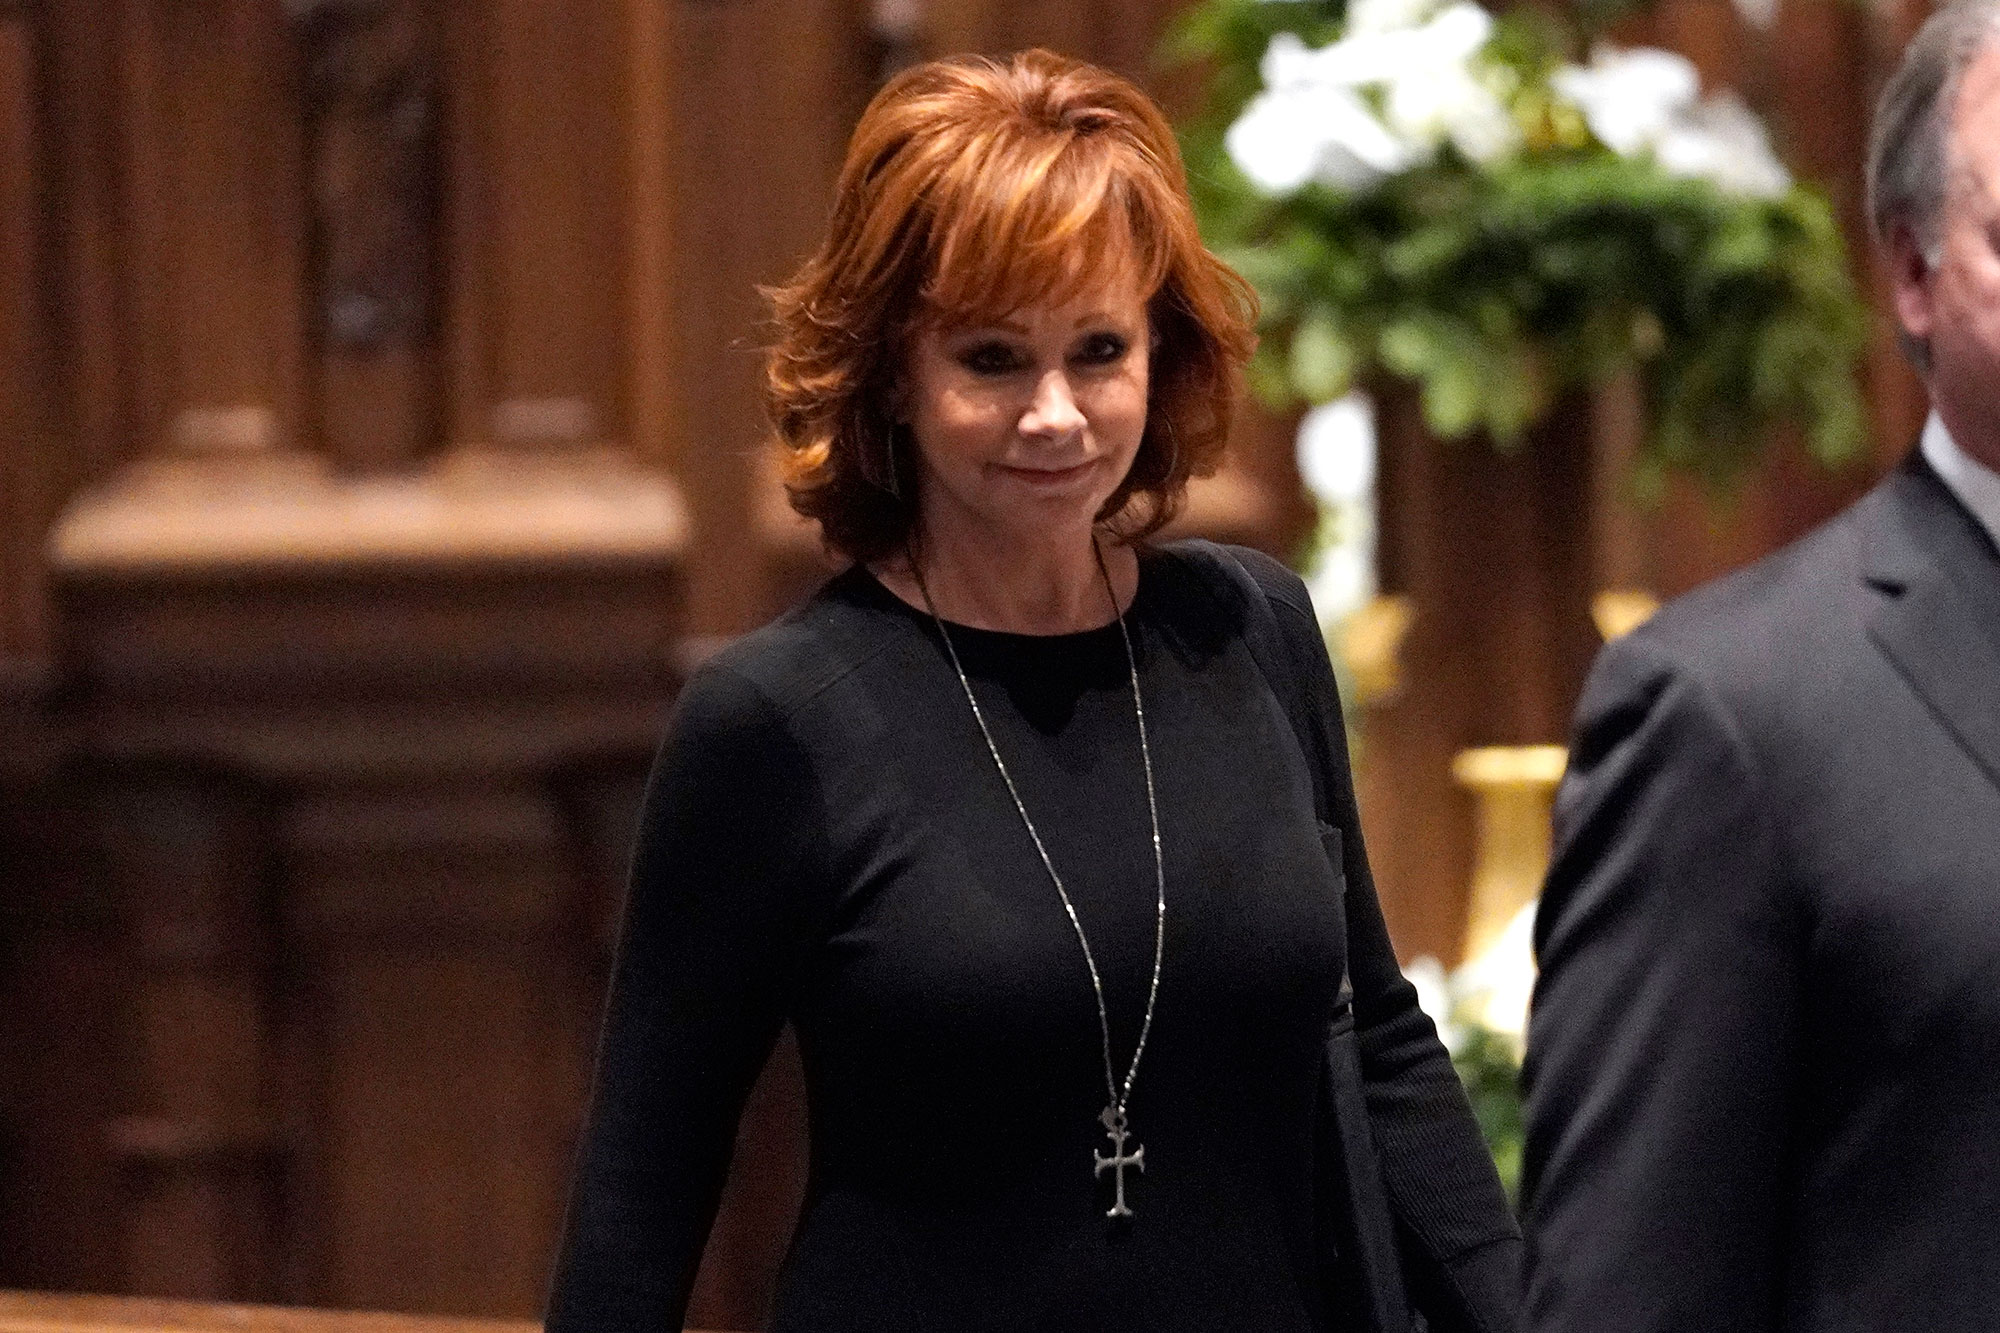 <div class='meta'><div class='origin-logo' data-origin='none'></div><span class='caption-text' data-credit='David J. Phillip, Pool/AP Photo'>Reba McEntire arrives for a funeral service for former President George H.W. Bush at St. Martin's Episcopal Church Thursday, Dec. 6, 2018, in Houston.</span></div>